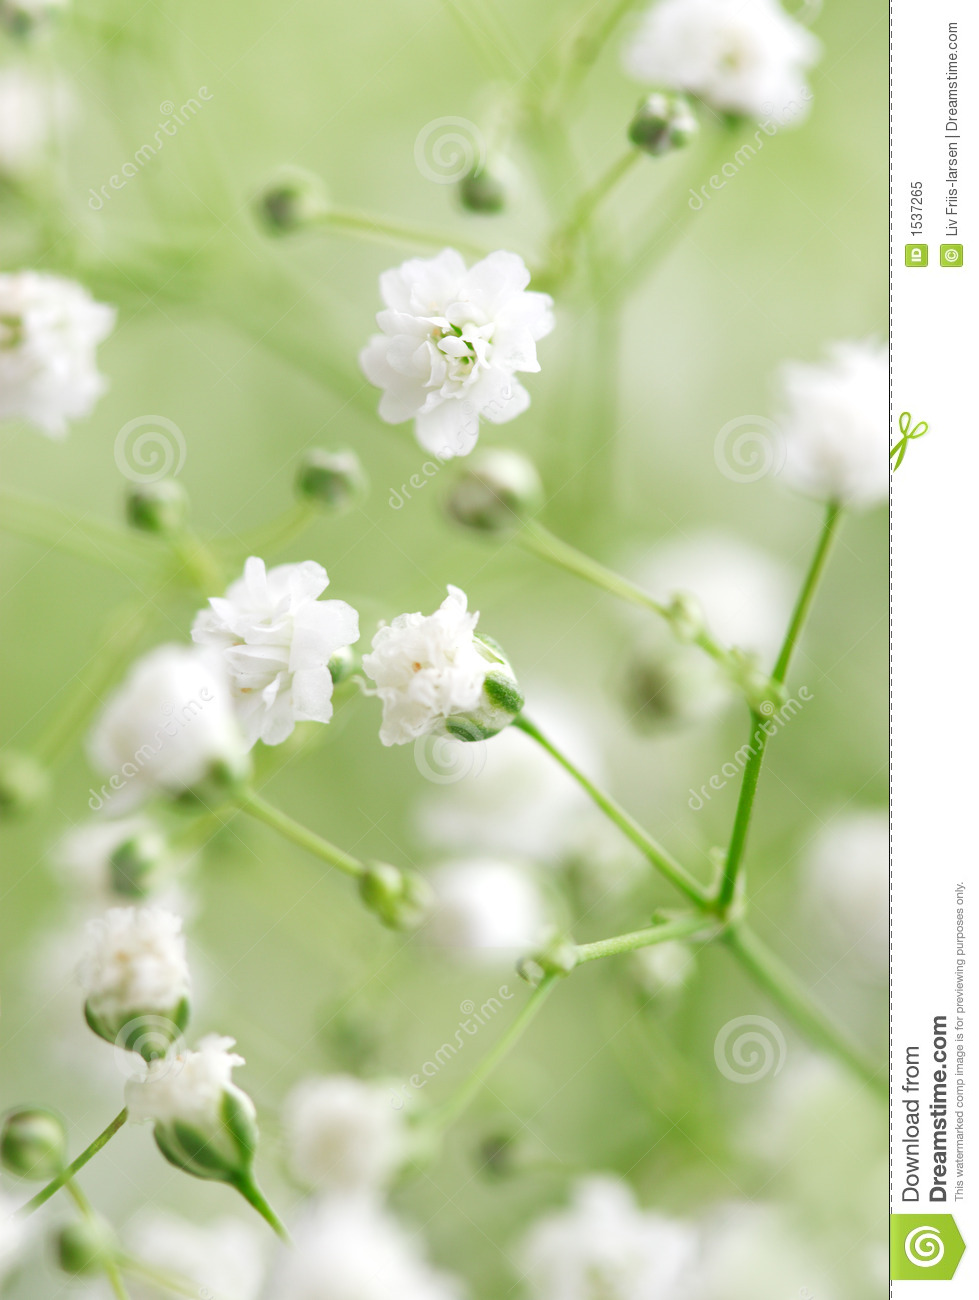 White Flowers Stock Image Image Of Flora Abstract Green 1537265